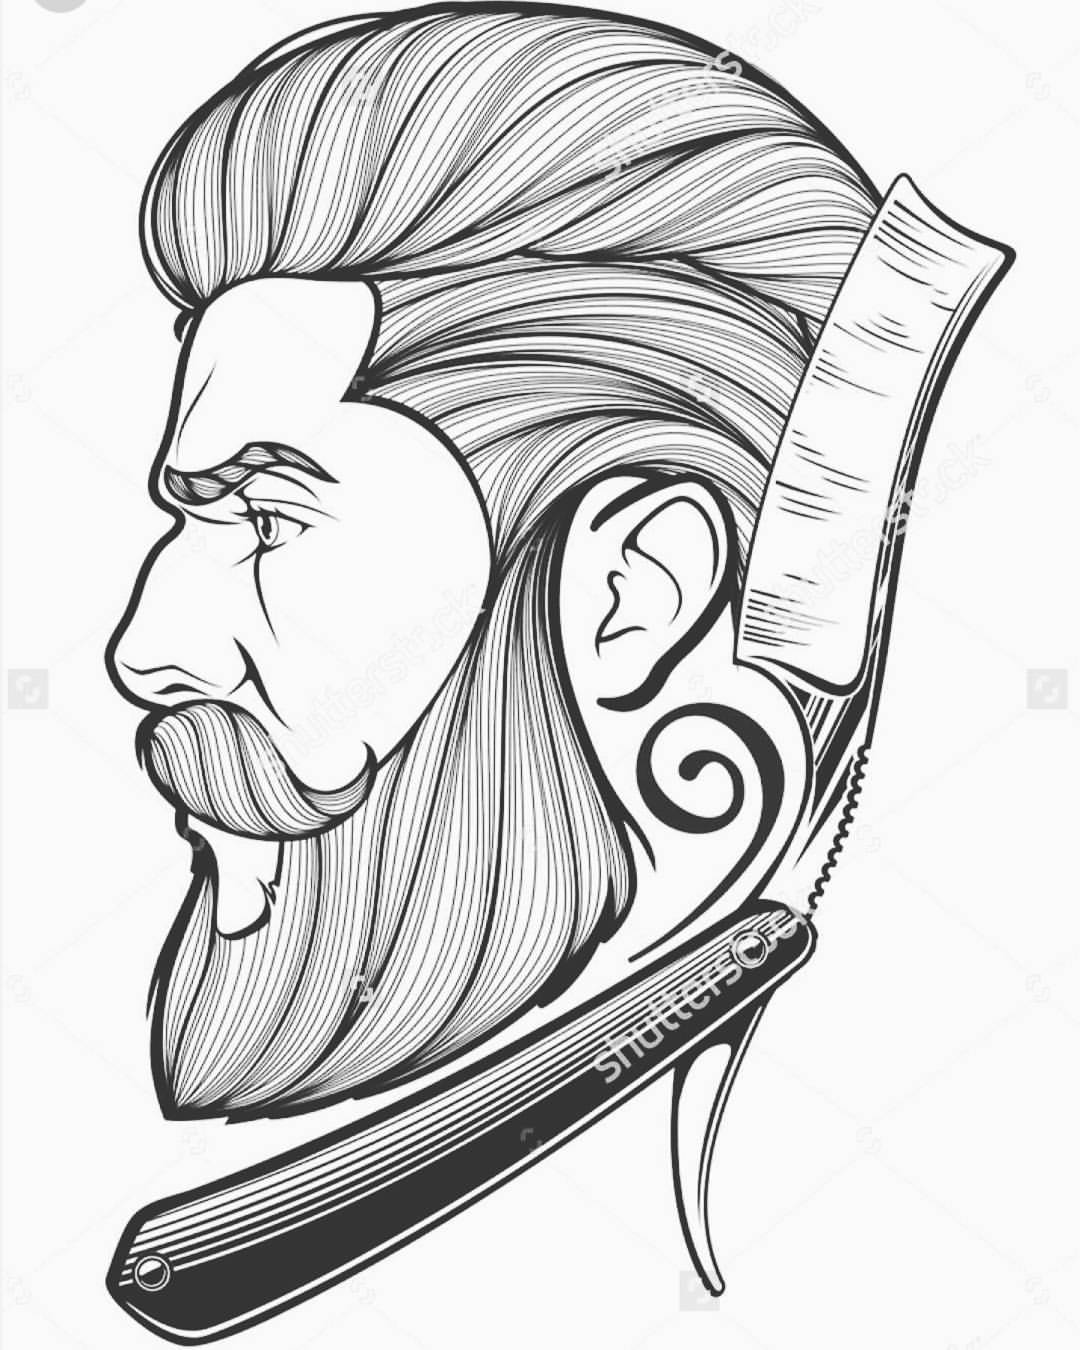 Drawn beard business professional Drawing Nice A drawing Nice